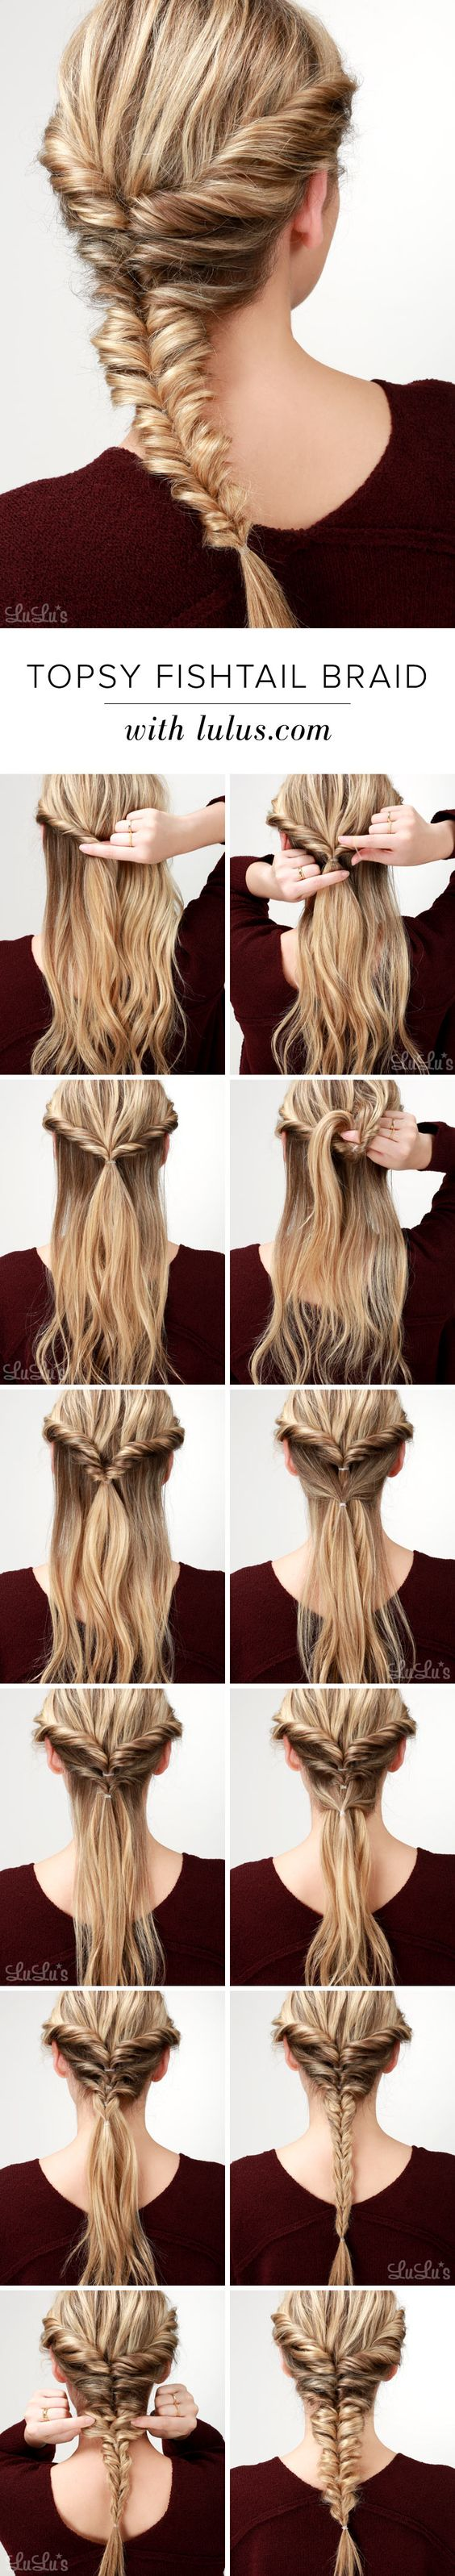 LuLu*s How-To: Topsy Fishtail Braid Tutorial at LuLus.com!: